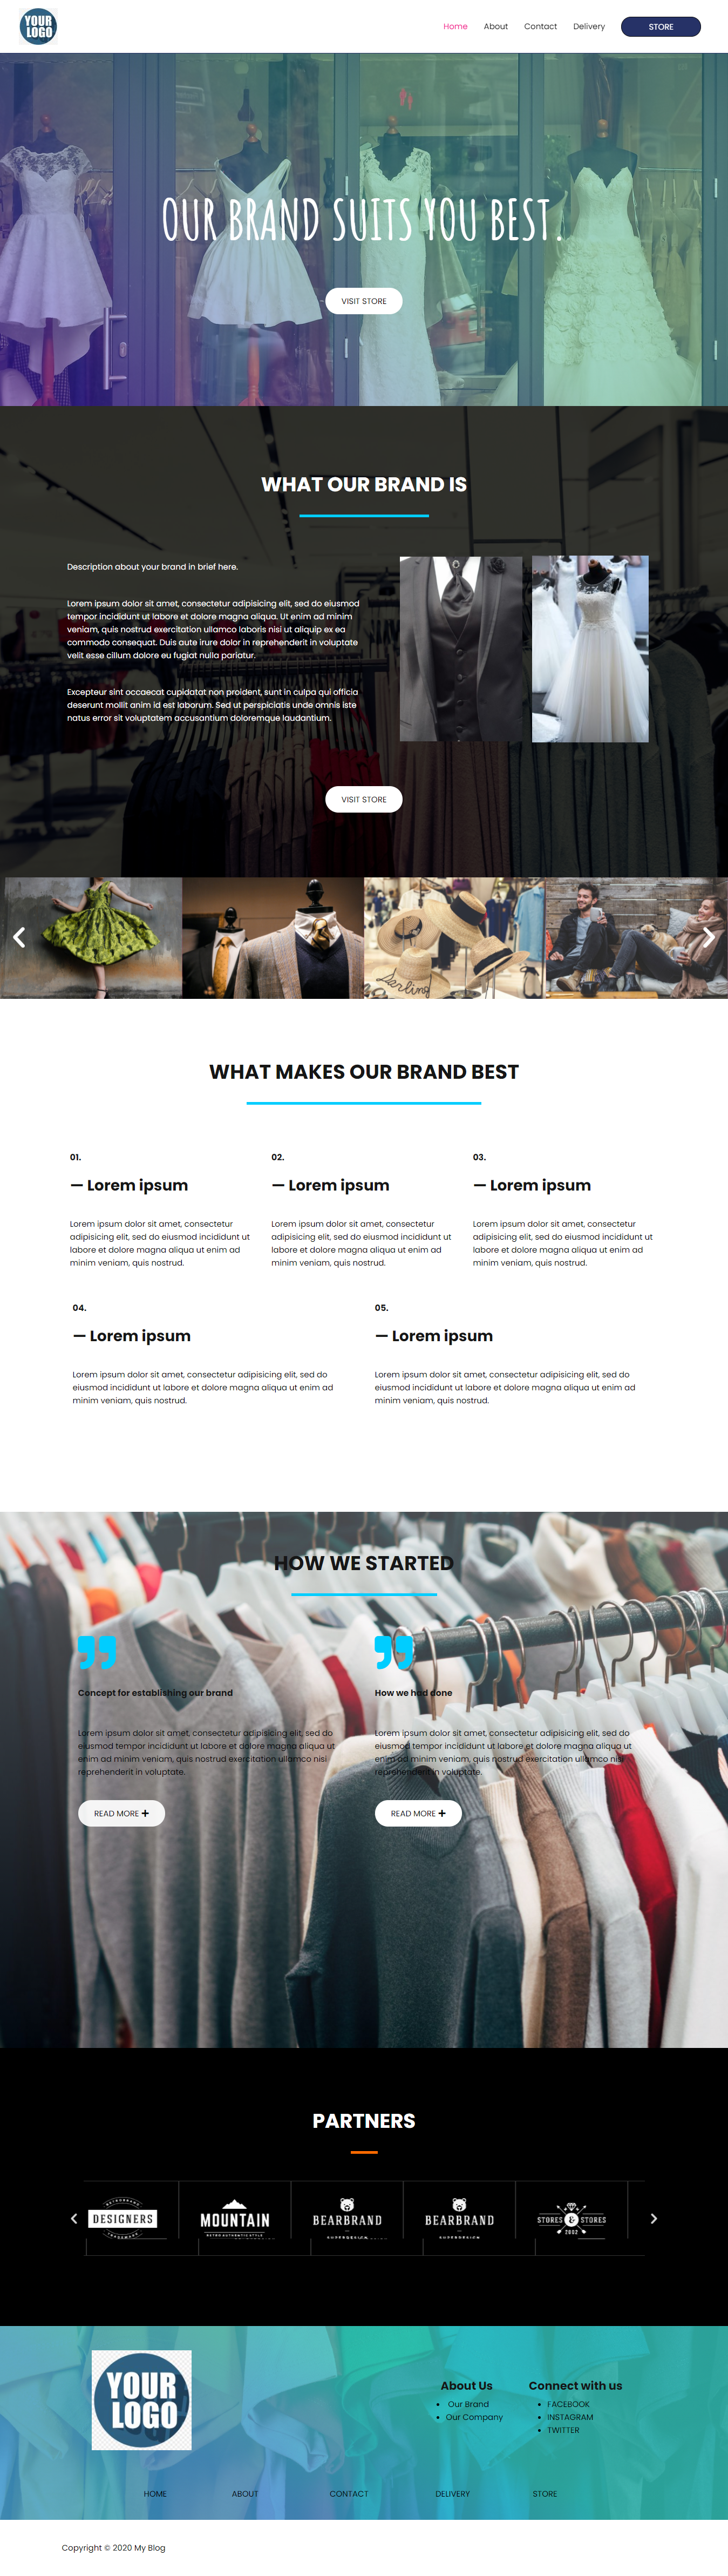 I will design a website for your Products, Brands, Organizations, etc